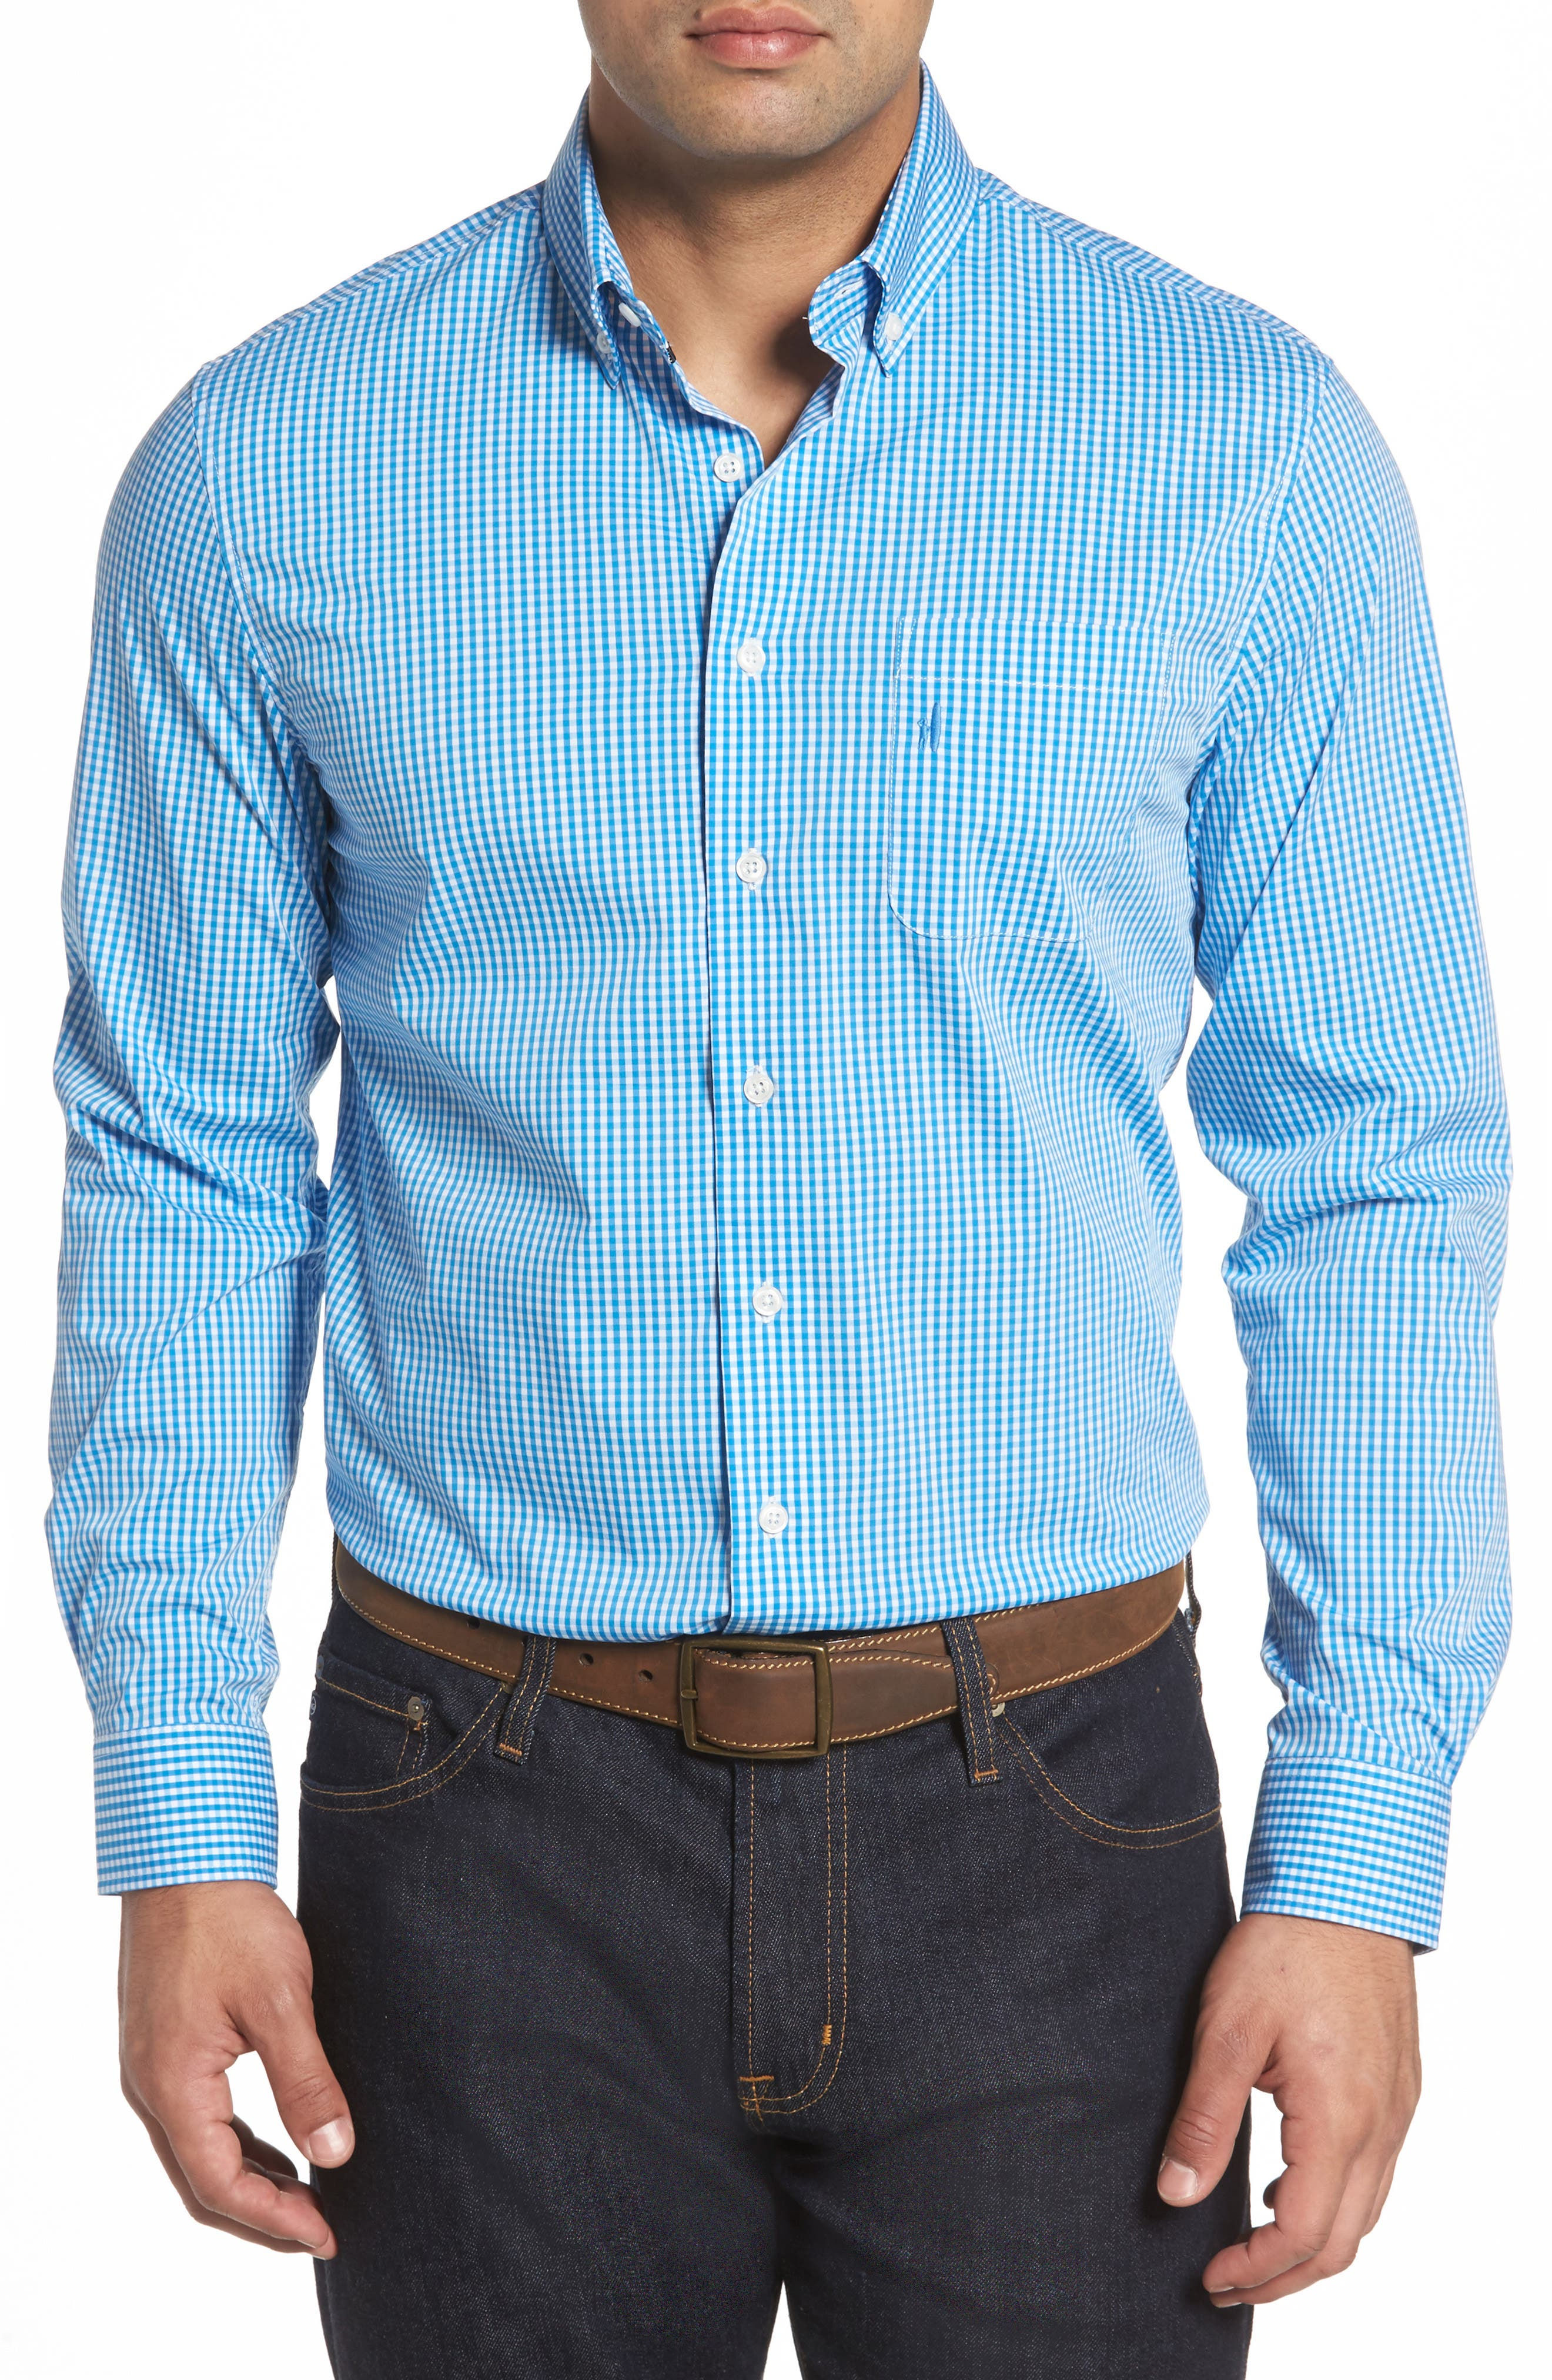 Augusta Classic Fit Check Sport Shirt,                         Main,                         color, Oasis